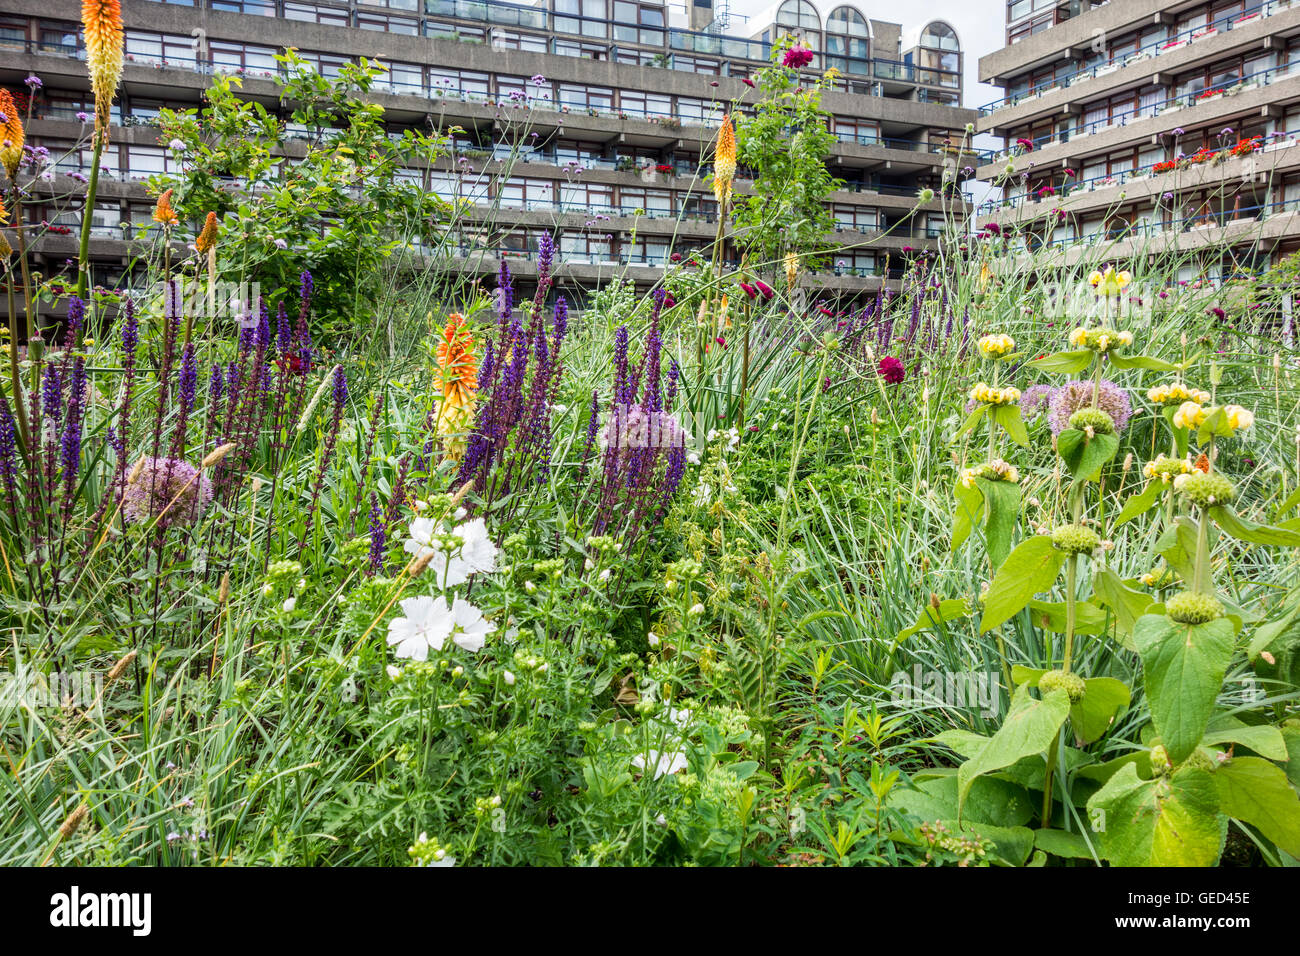 Summer flowers in Beech Gardens planted by Nigel Dunnett at the Barbican Estate, London, UK - Stock Image